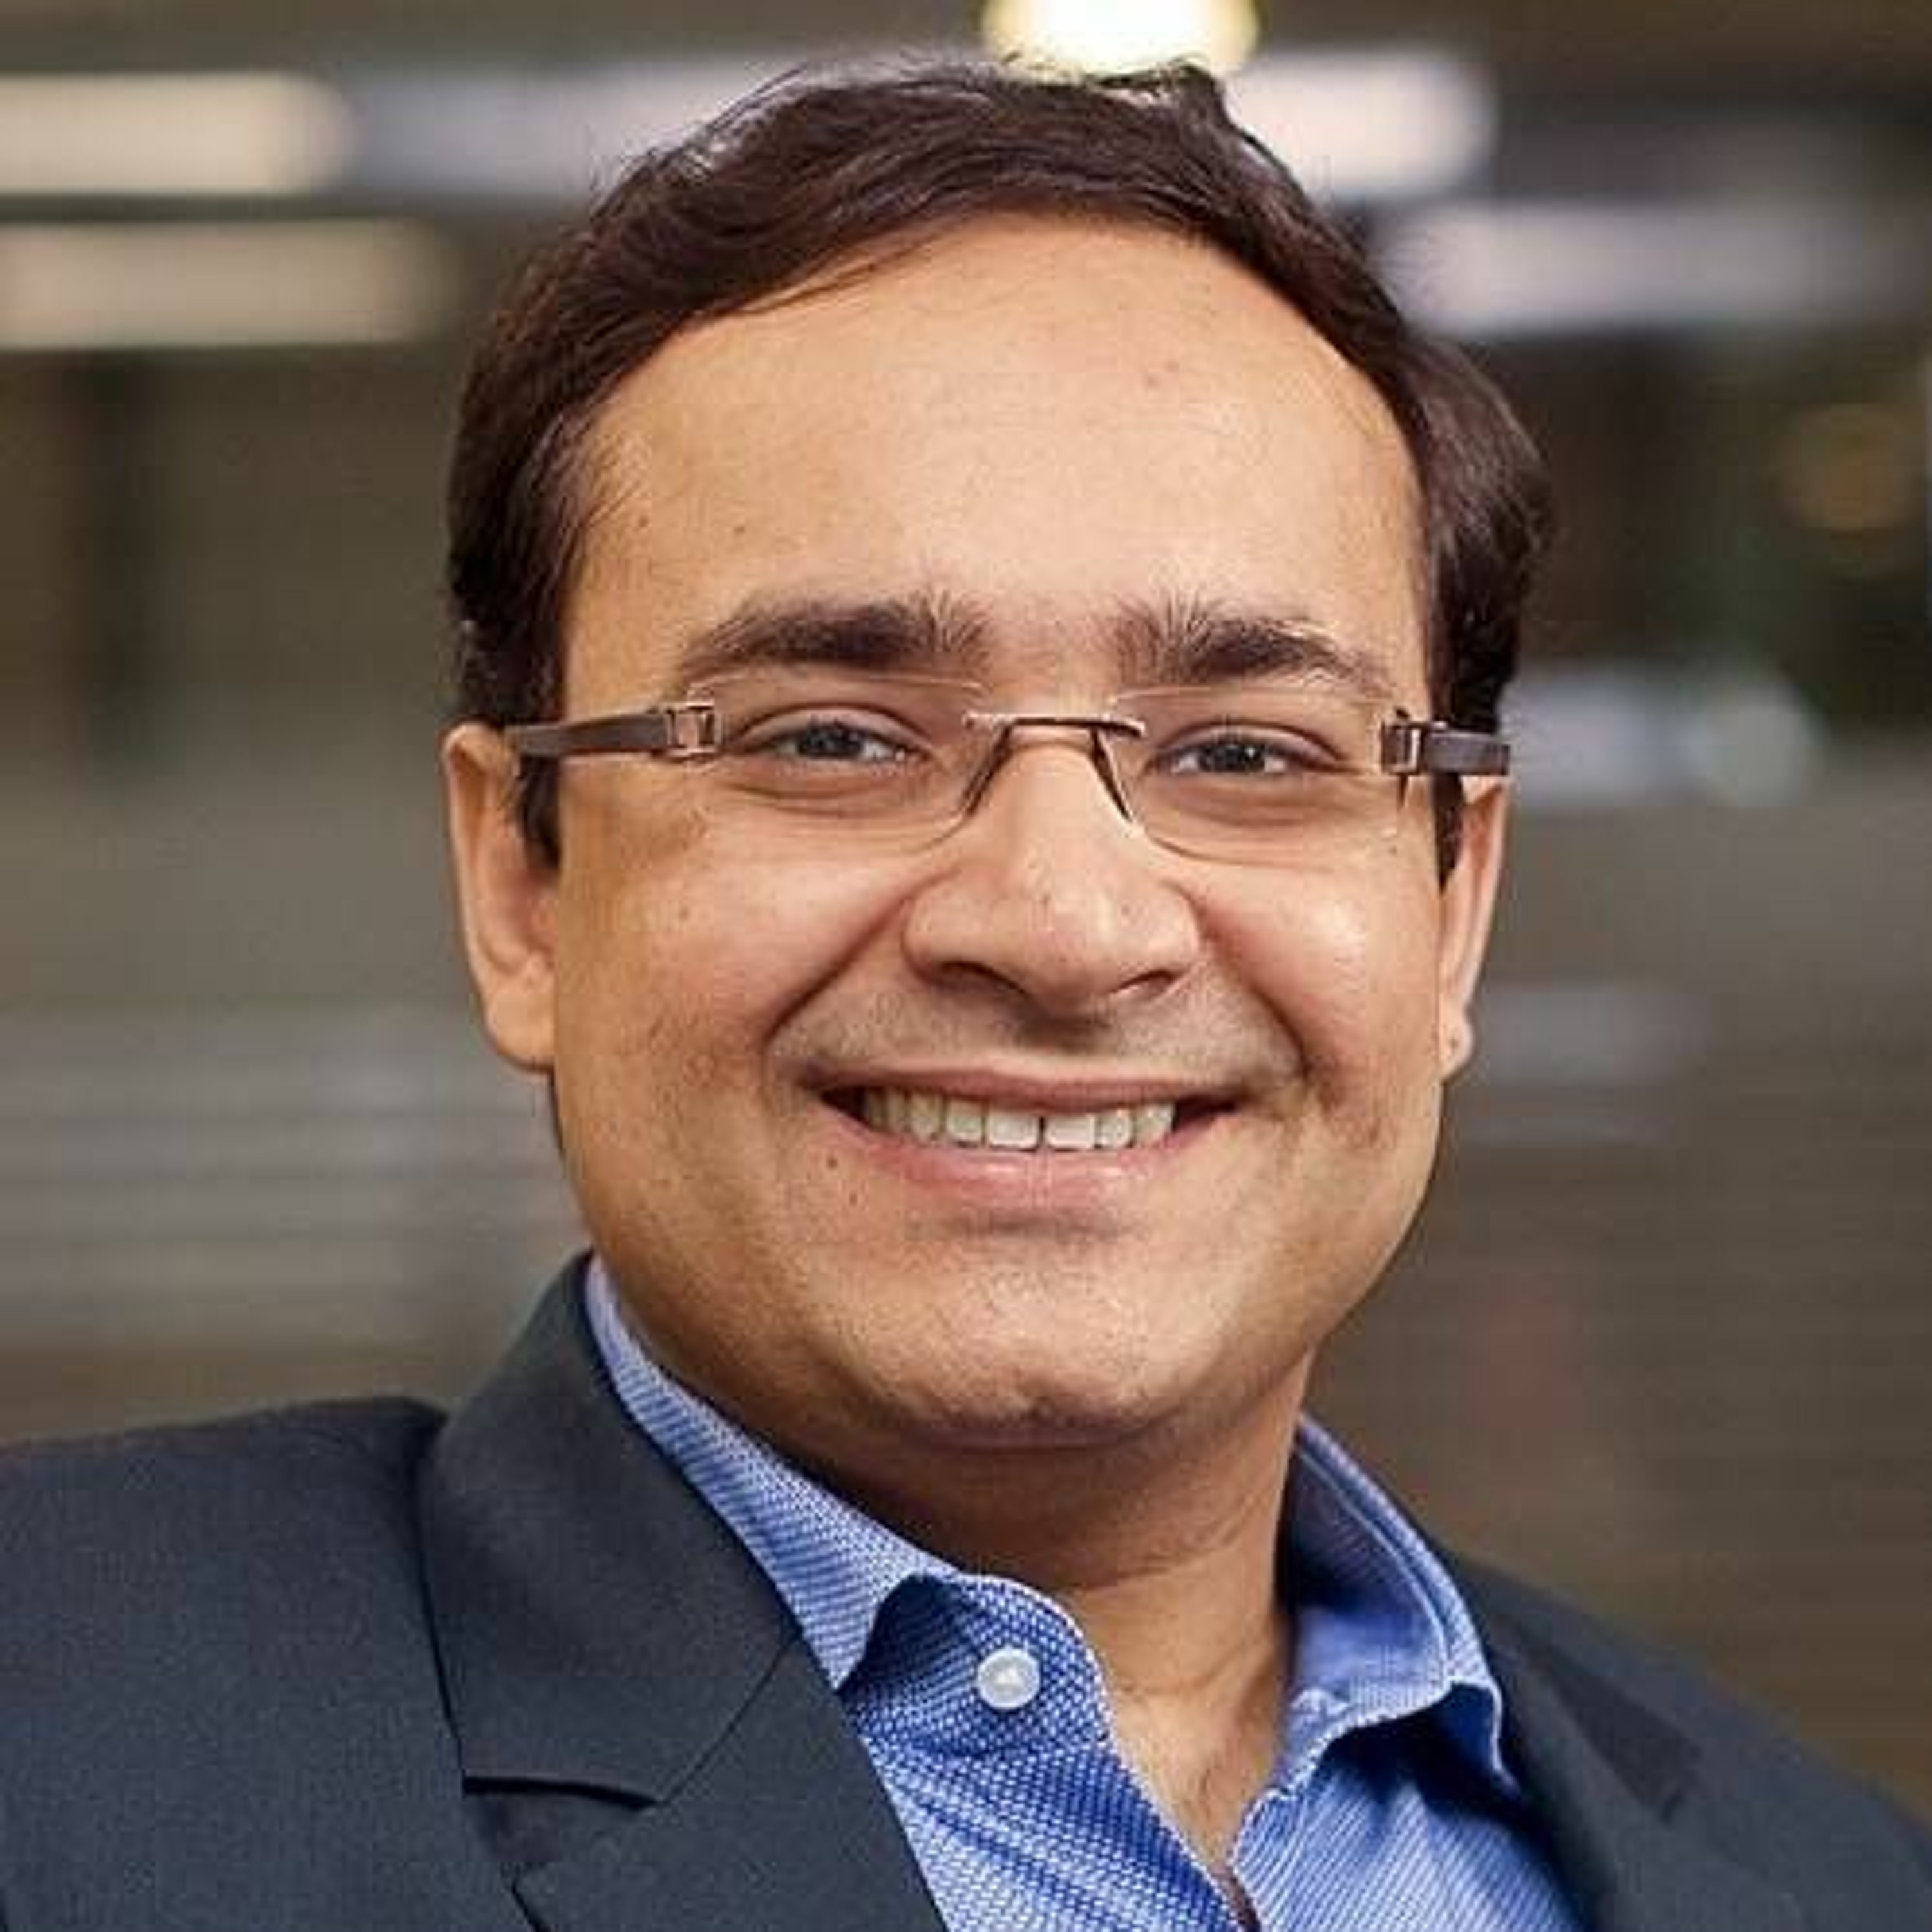 Pankaj Makkar, Bertelsmann India Investments, on Investing in Growth Stage Startups